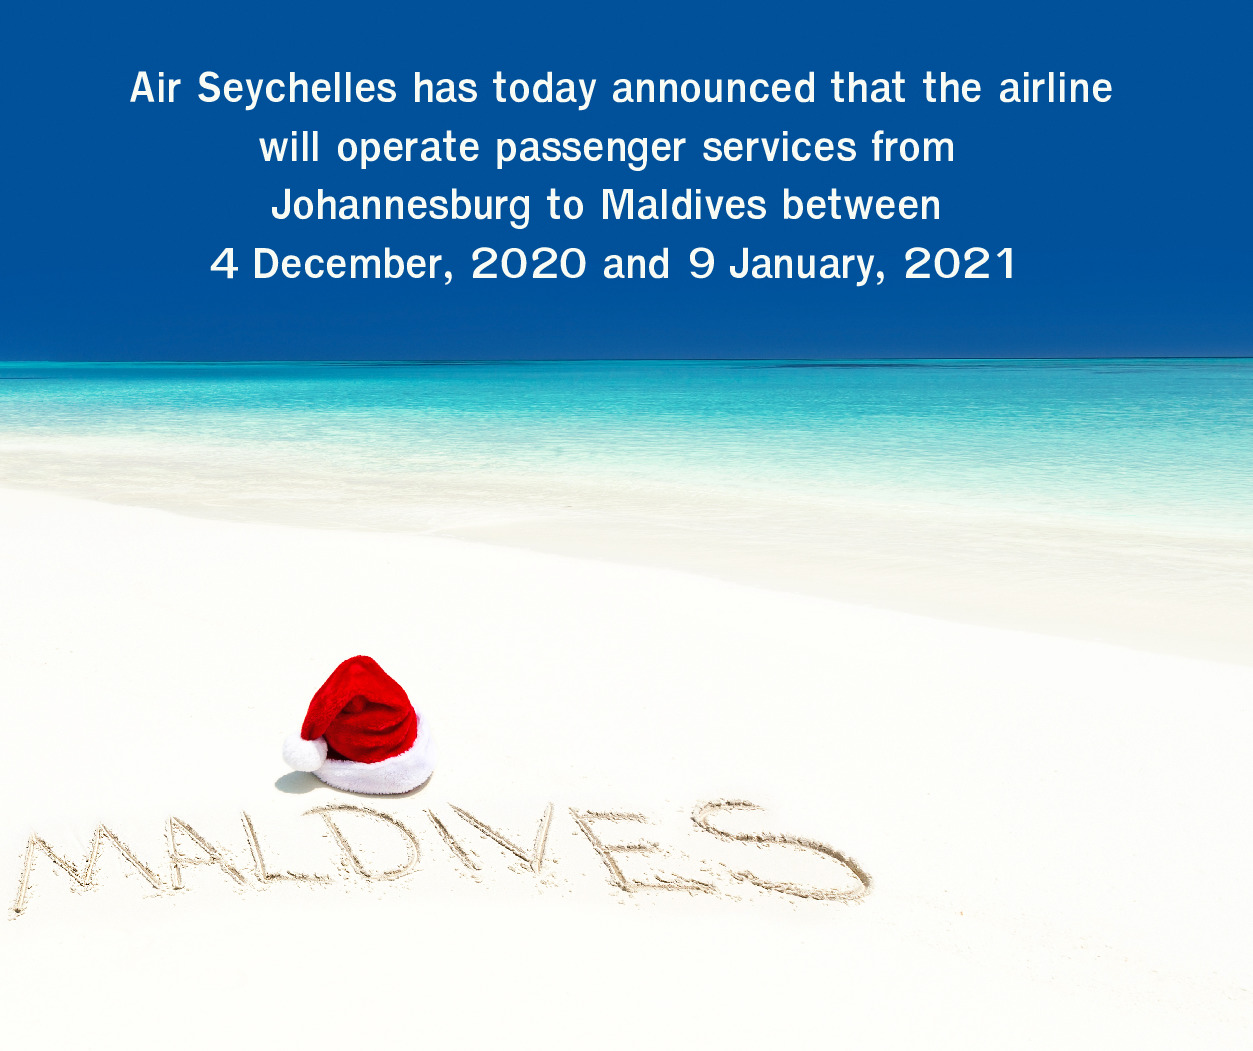 Air Seychelles is off to the Maldives